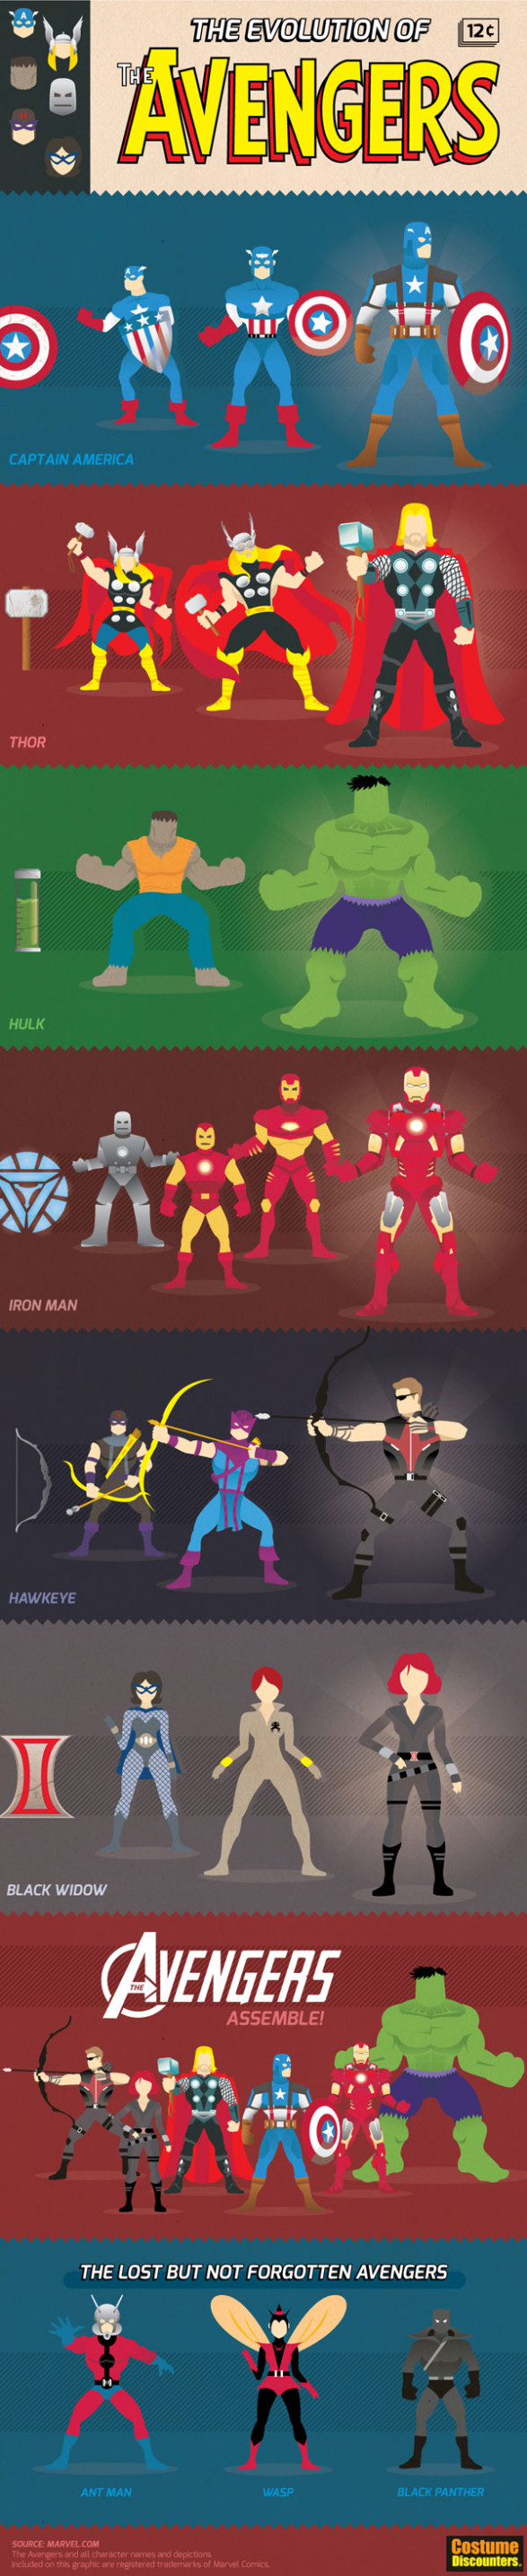 Evolution of the Avengers